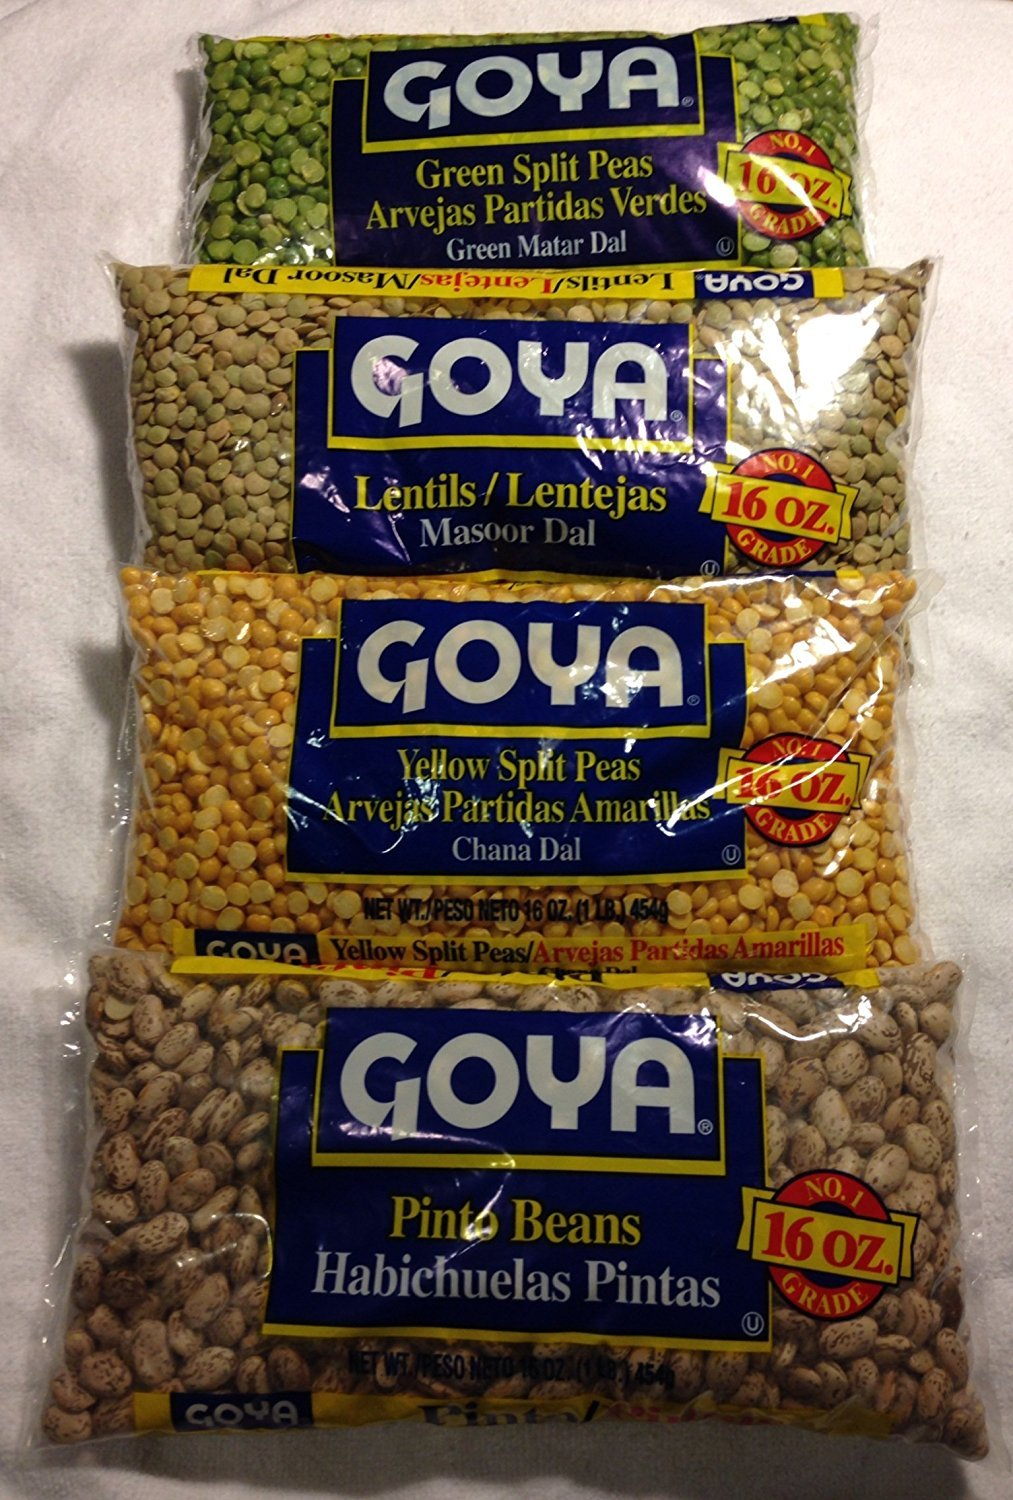 GOYA Dried Lentils, Pinto Beans, Yellow Split Peas & Green Split Peas - Variety Pack - 16oz Each 1 Lb Bag (4 Pack) Split Pea or Lentil Soup - Refried Beans - Recipes on Bag, Dip, Healthy Protein by Goya